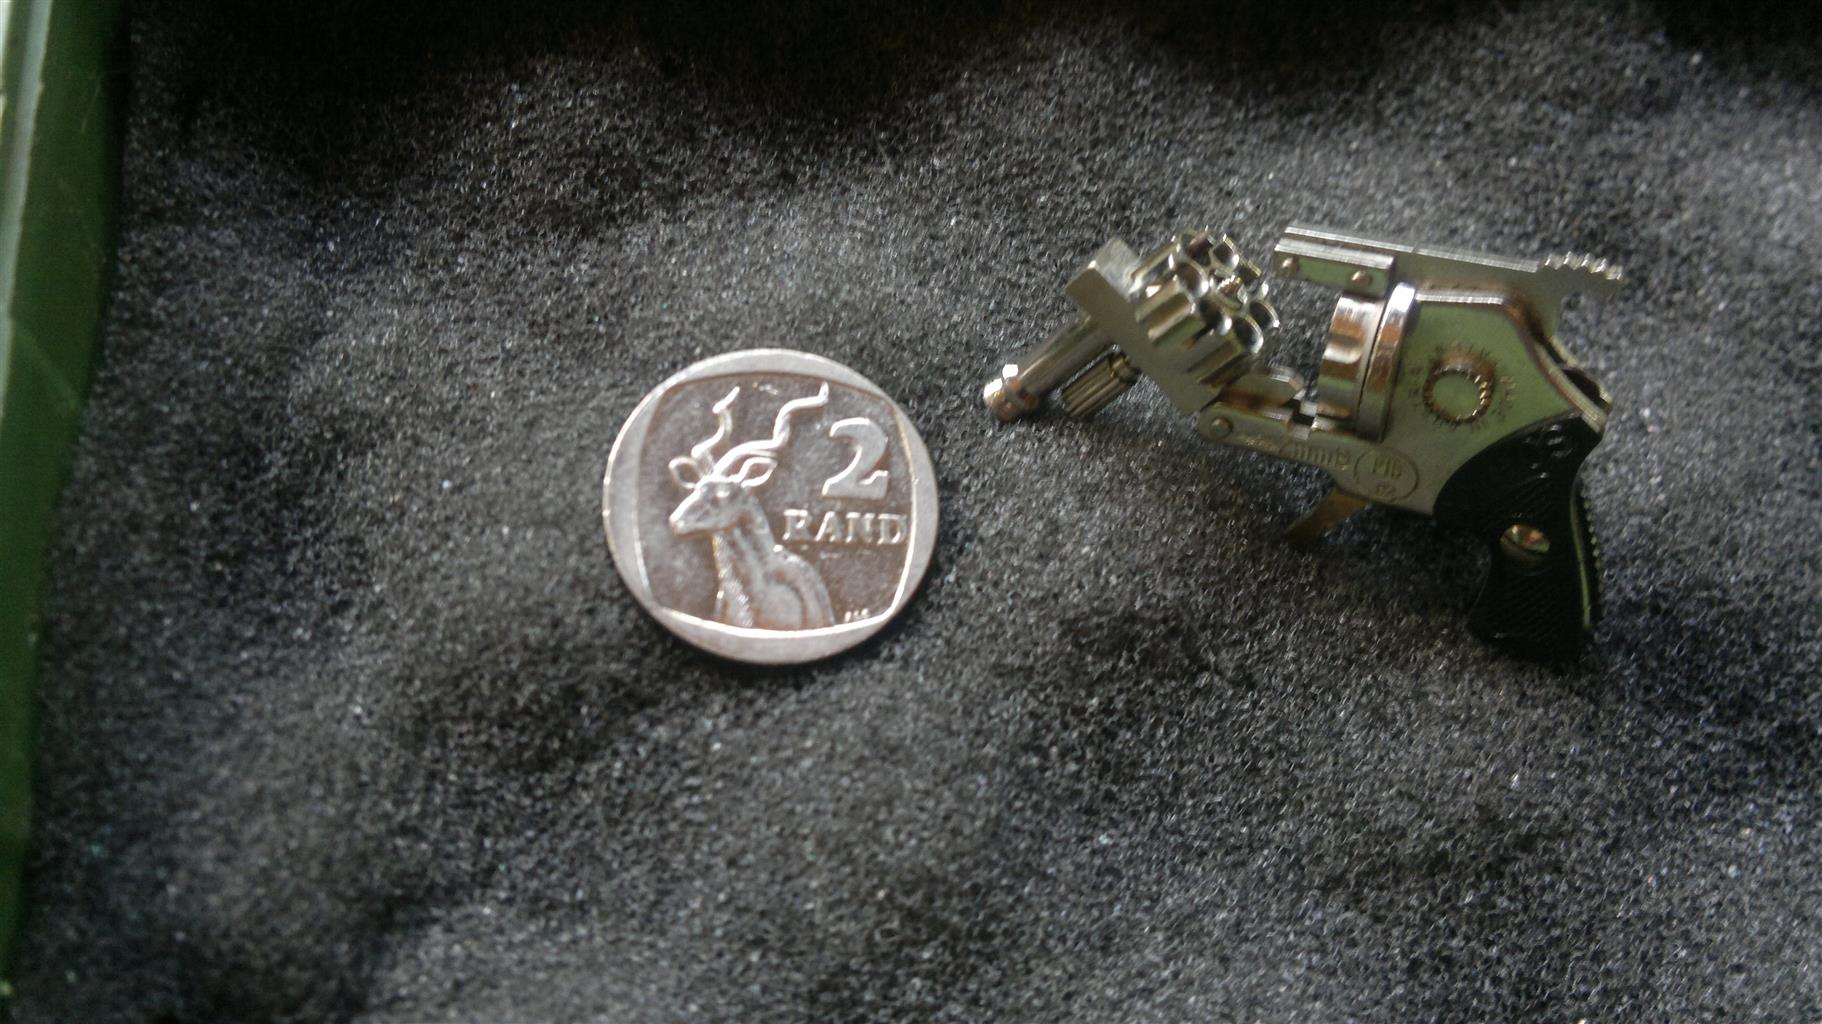 Worlds smallest Gun